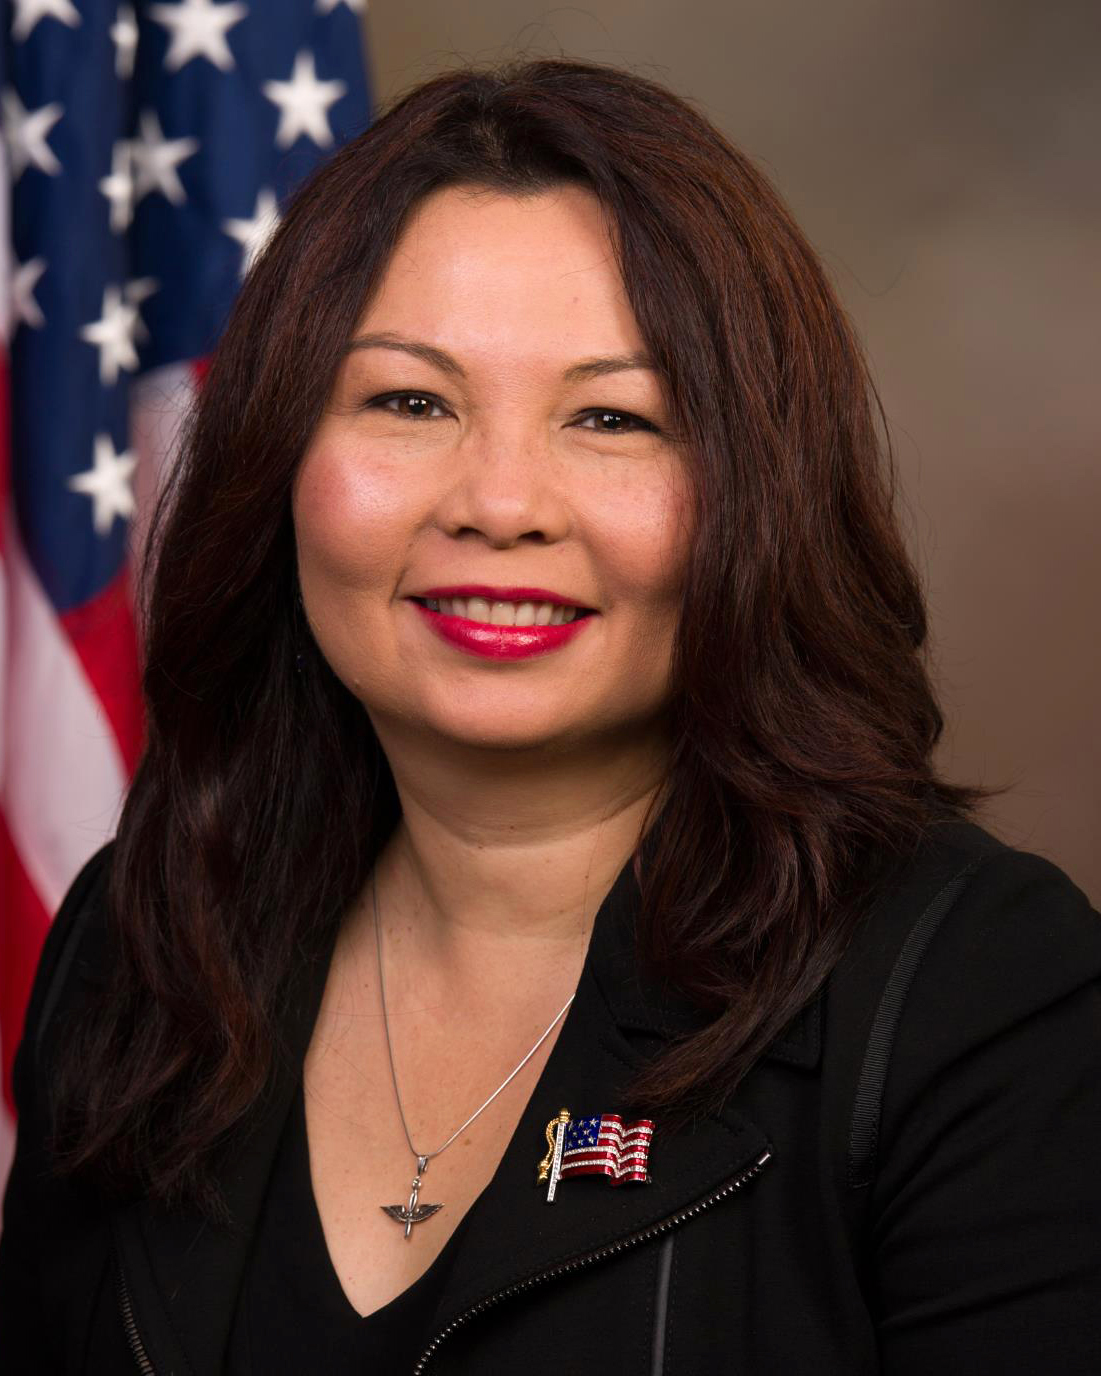 Image Result For Tammy Duckworth